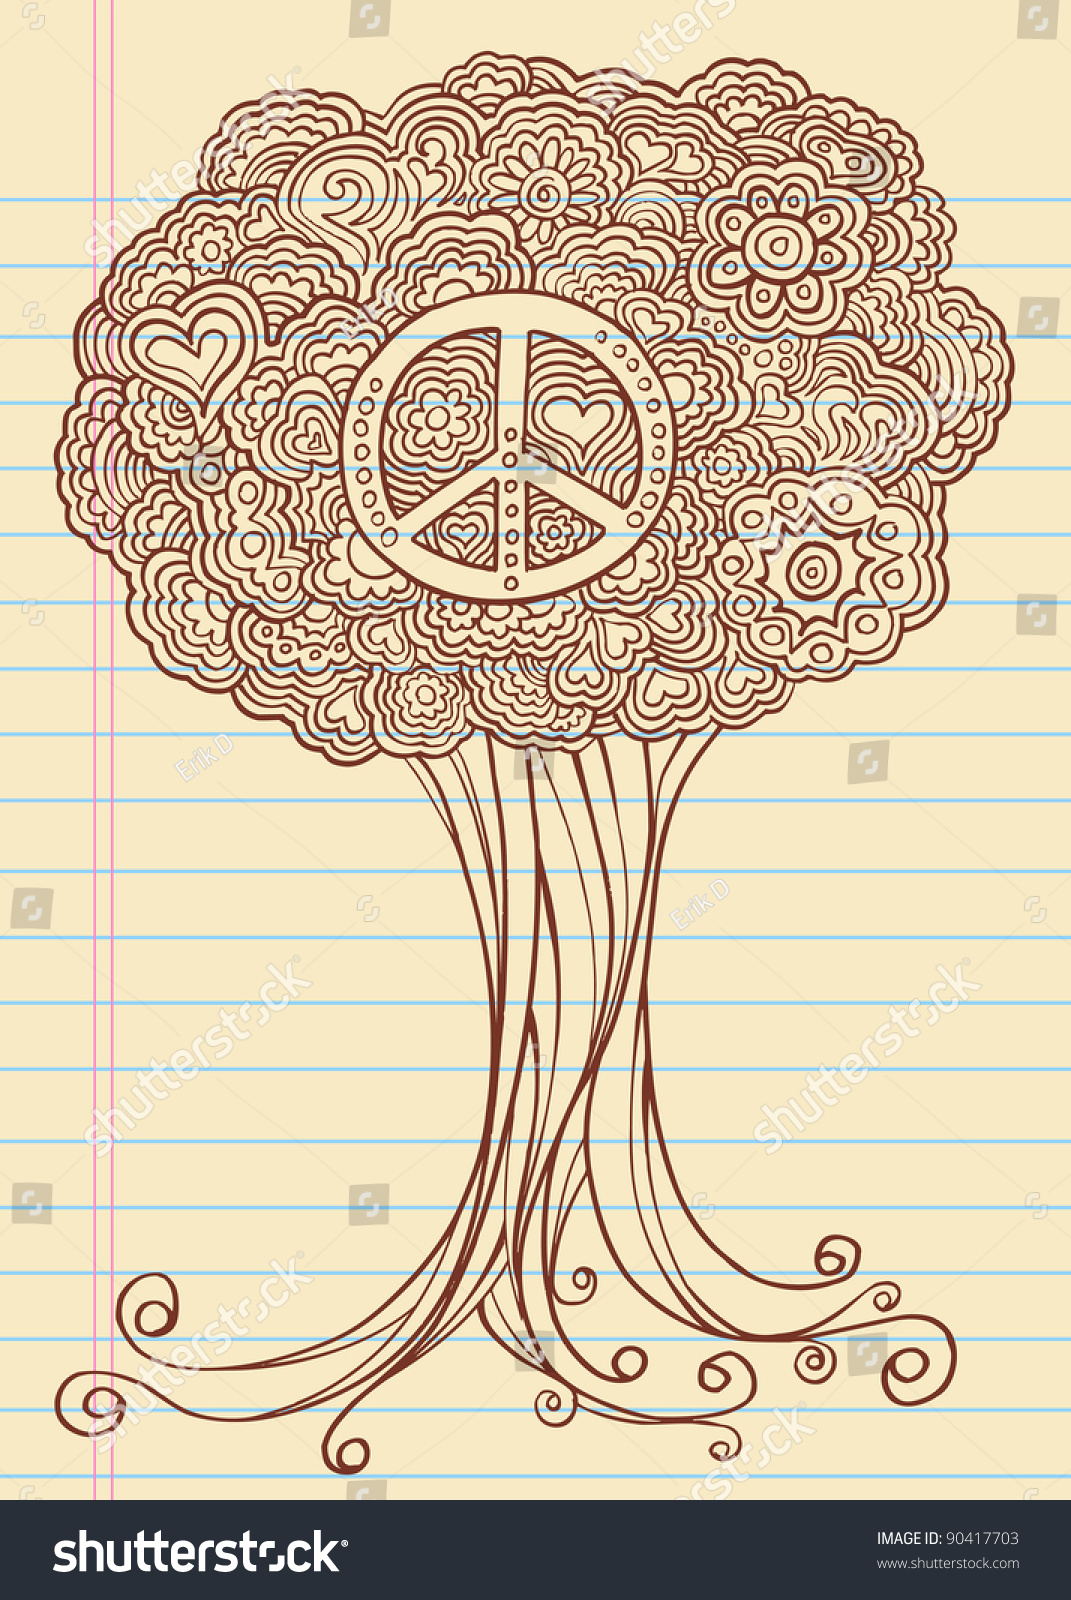 Notebook Doodle Sketch Henna Tree Drawing Stock Vector Royalty Free